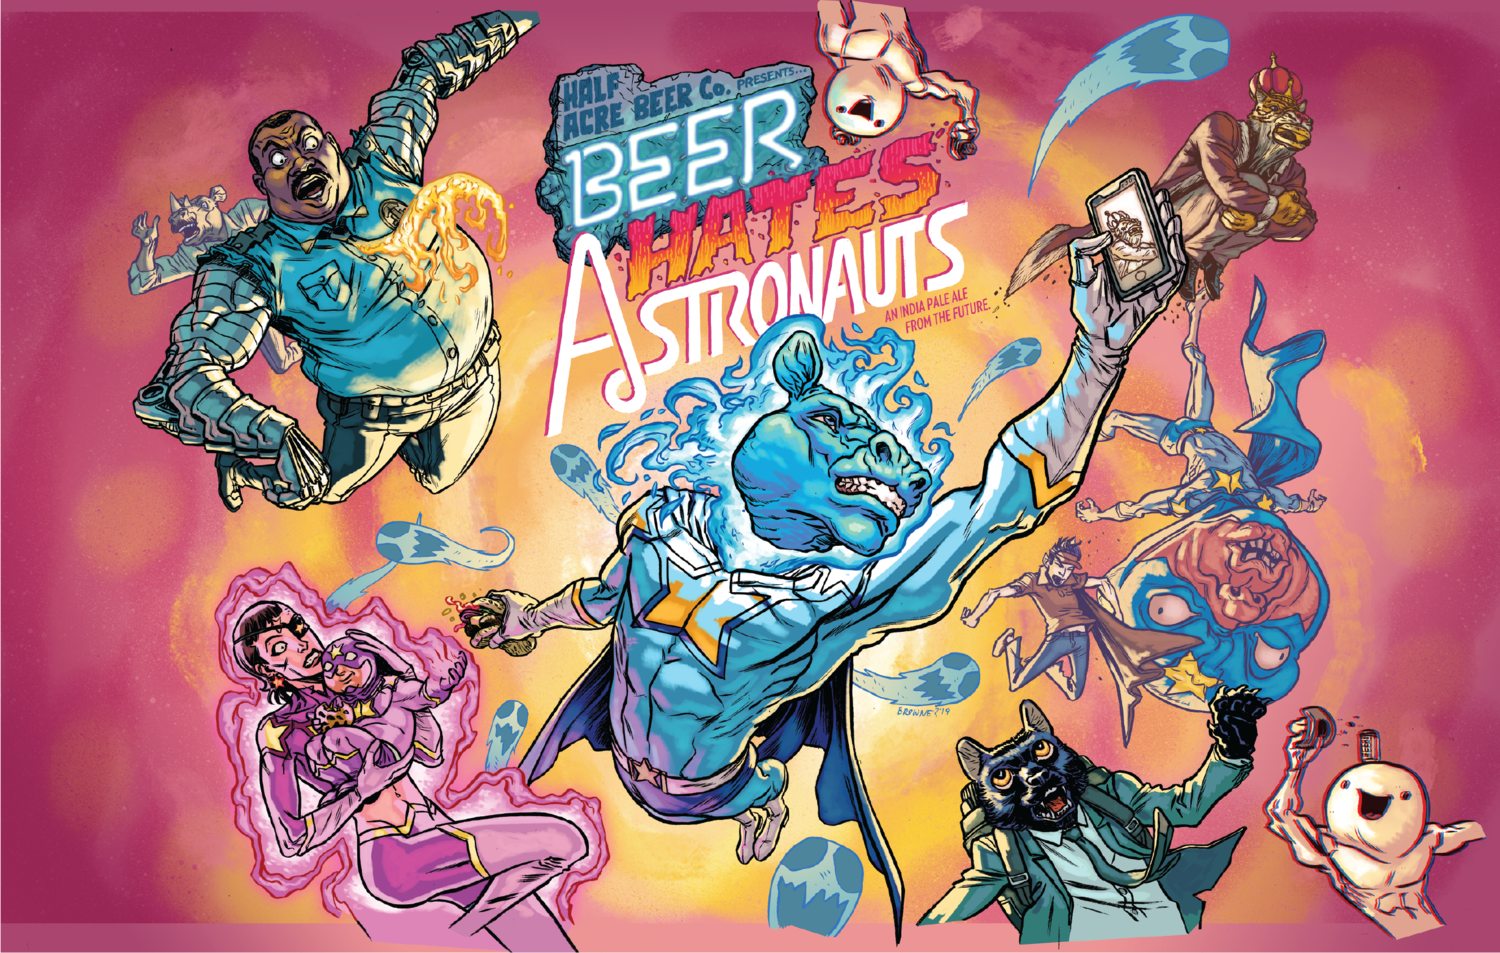 The label for Beer Hates Astronauts made by Half Acre Brewing